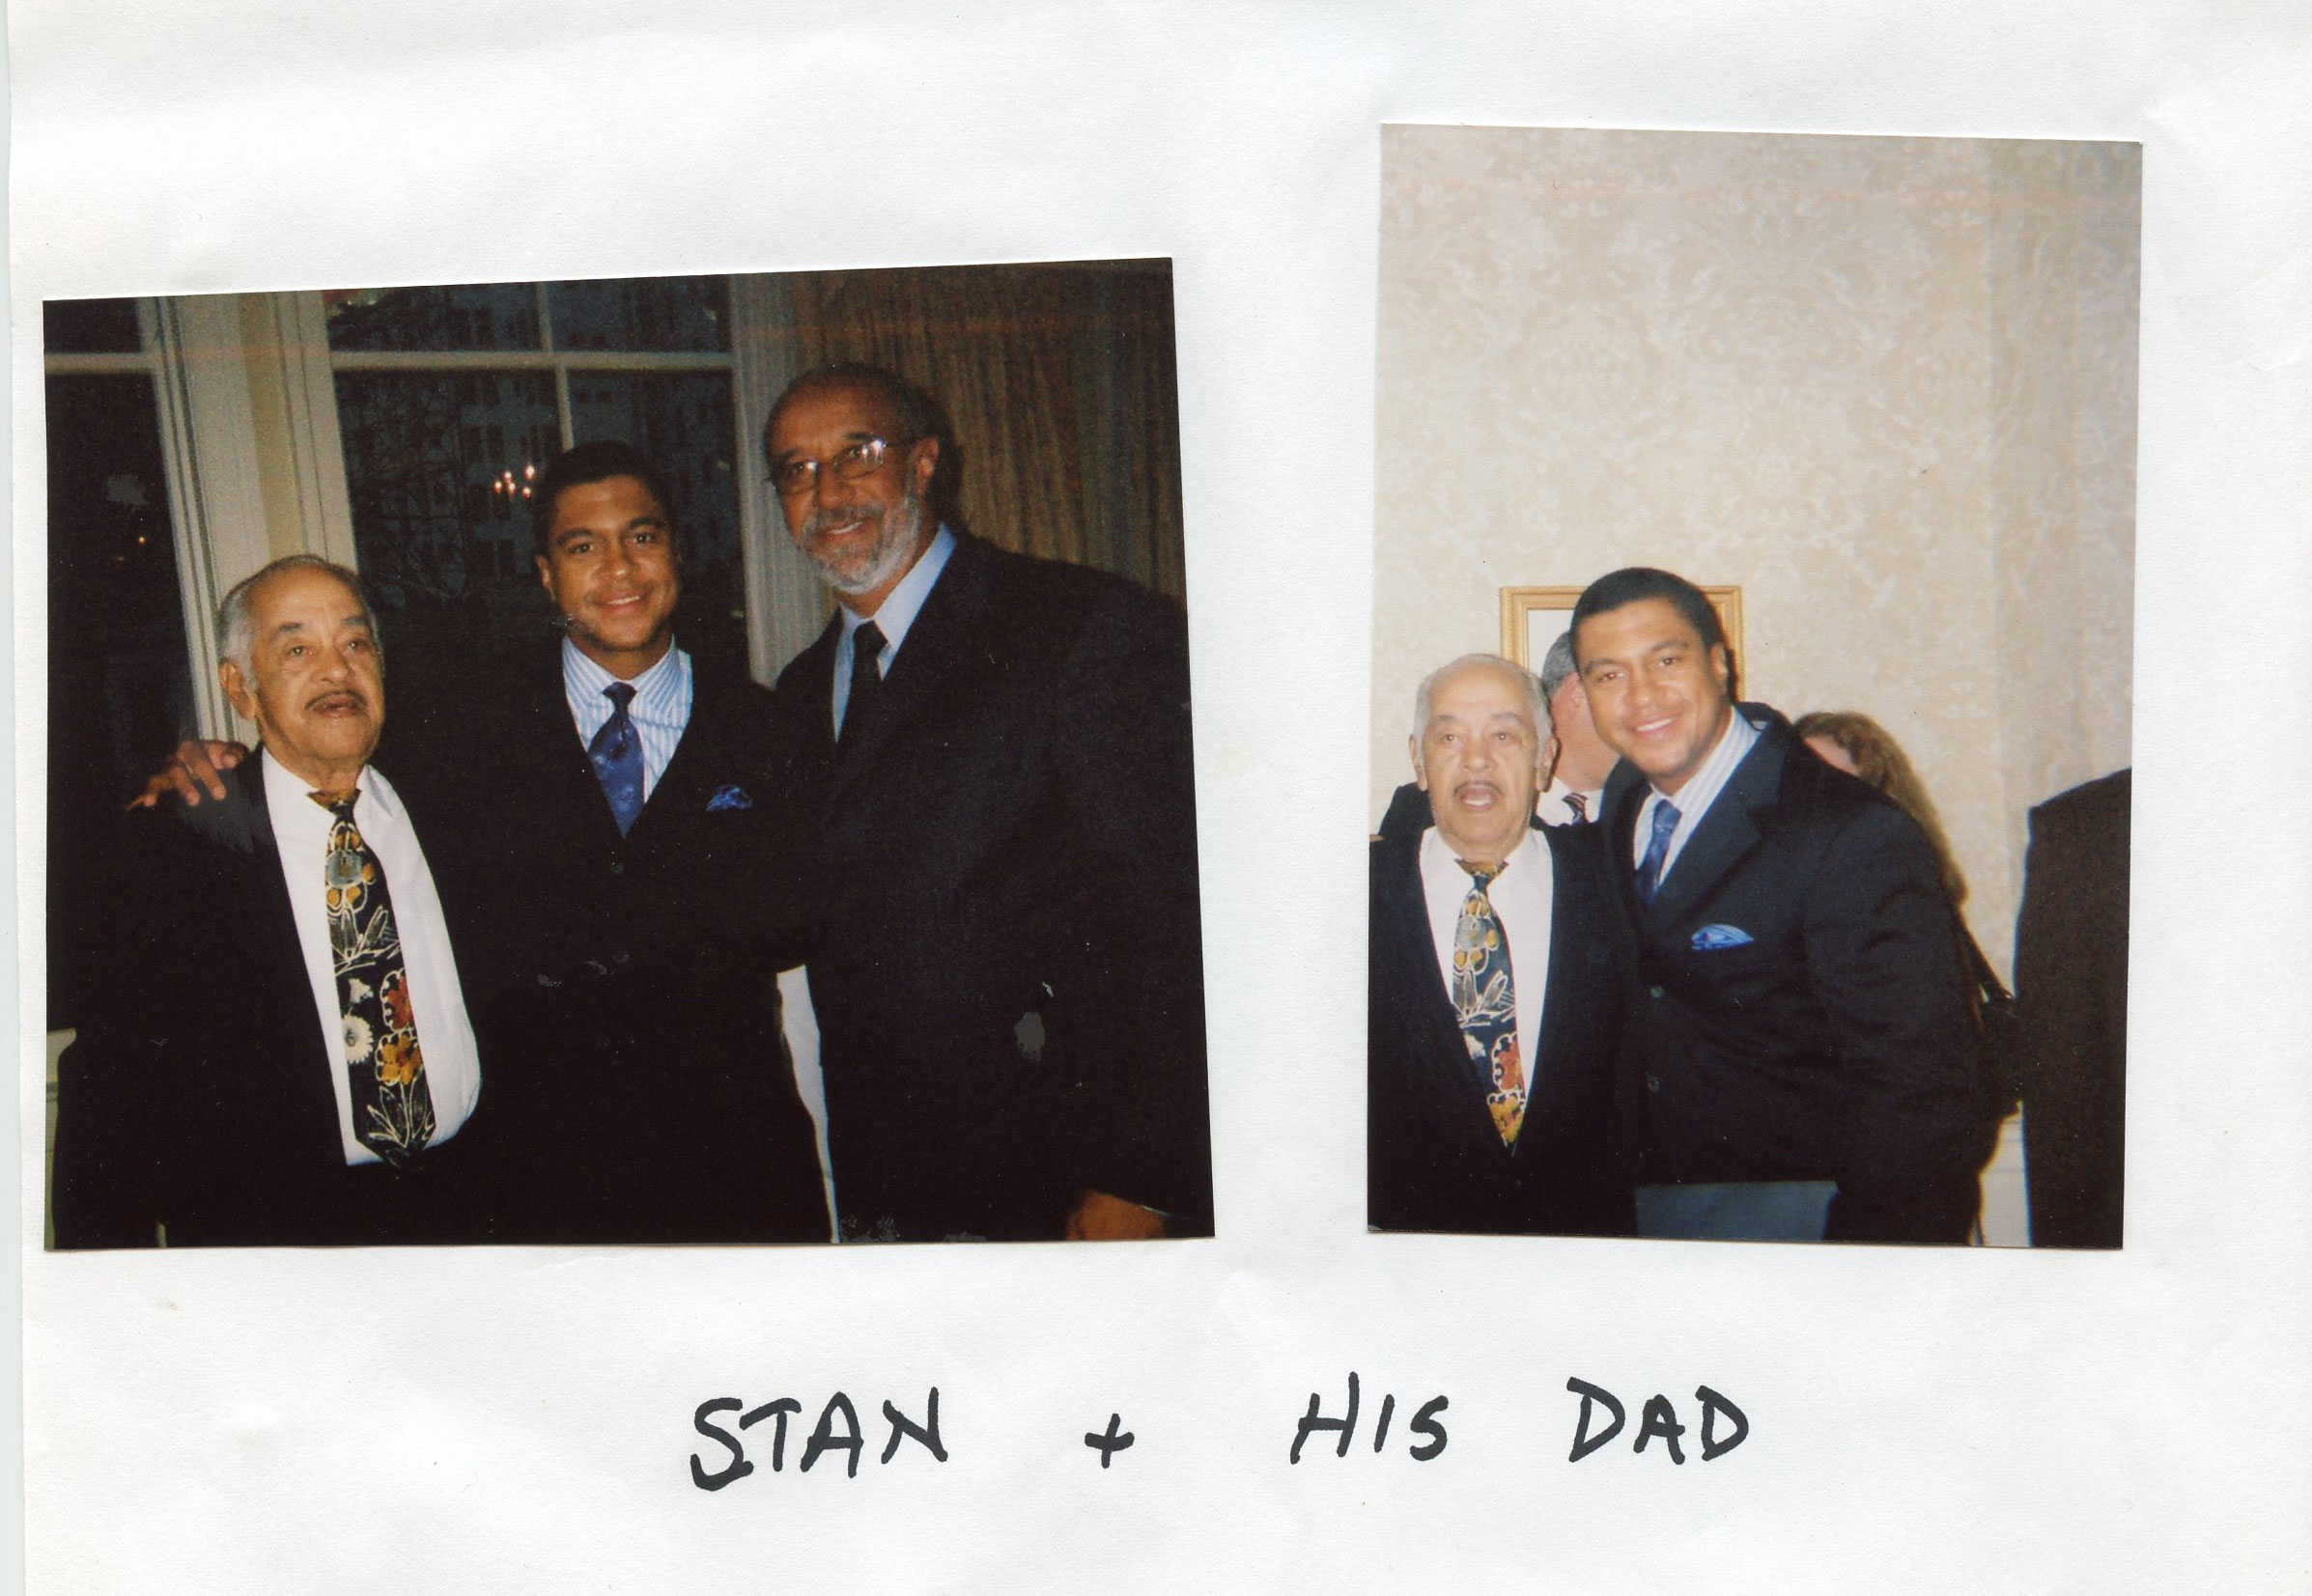 Two photos of Stan with family members.